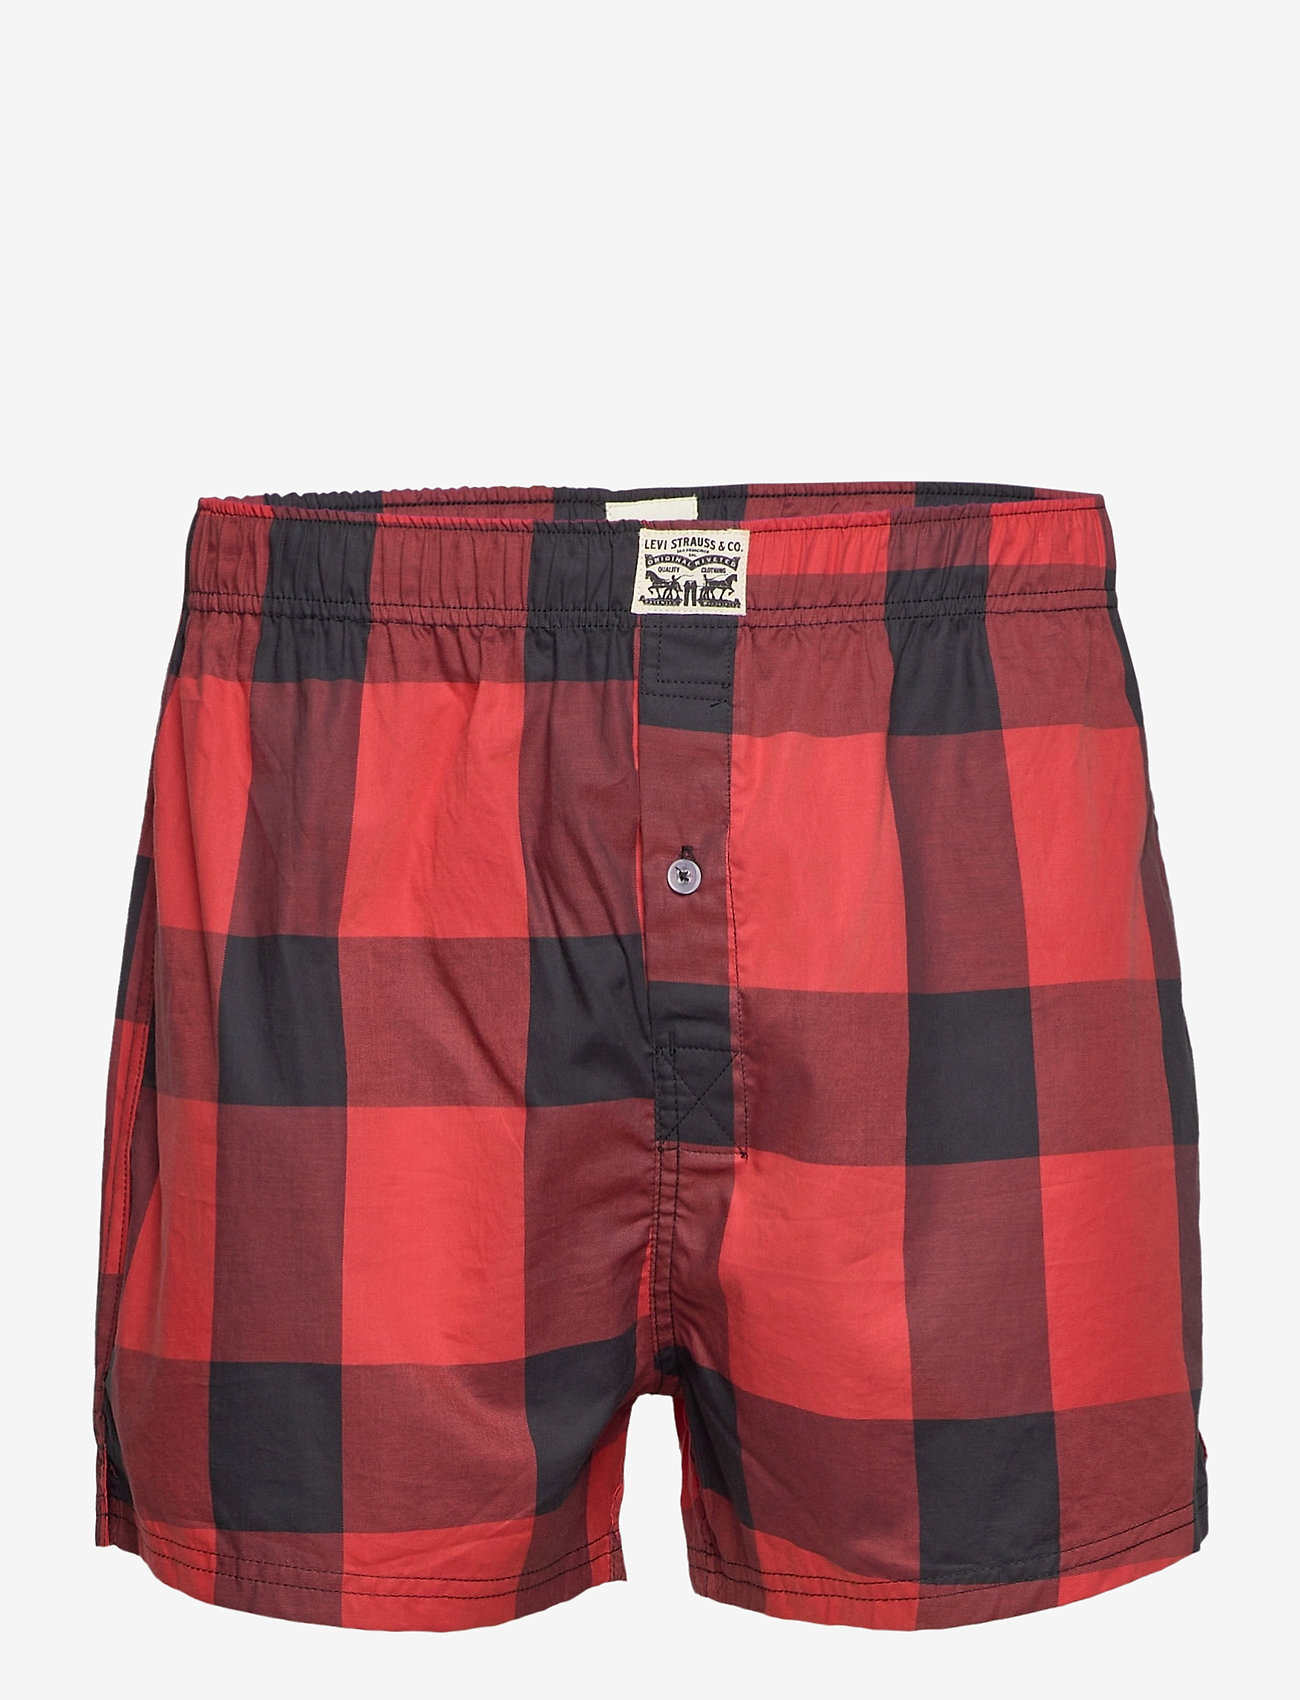 Levi´s LEVIS MEN PREMIUM BUFFALO CHECK WOV - Shorts RED - Menn Klær